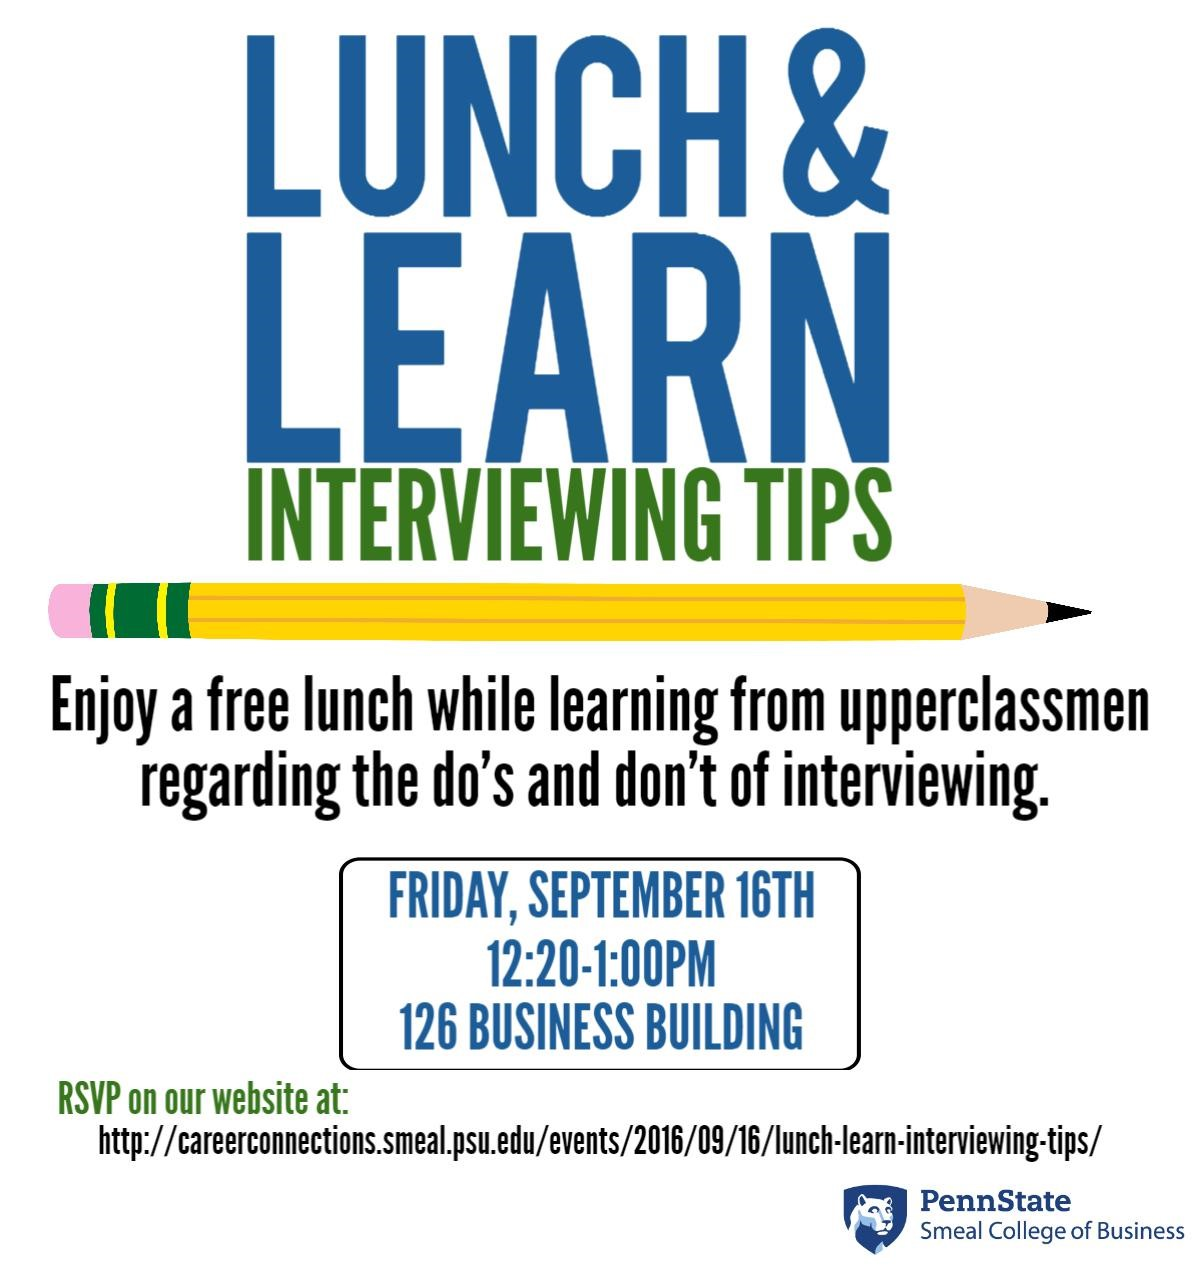 lunch learn interviewing tips careerconnections smeal lunch learn interviewing tips careerconnections smeal college of business